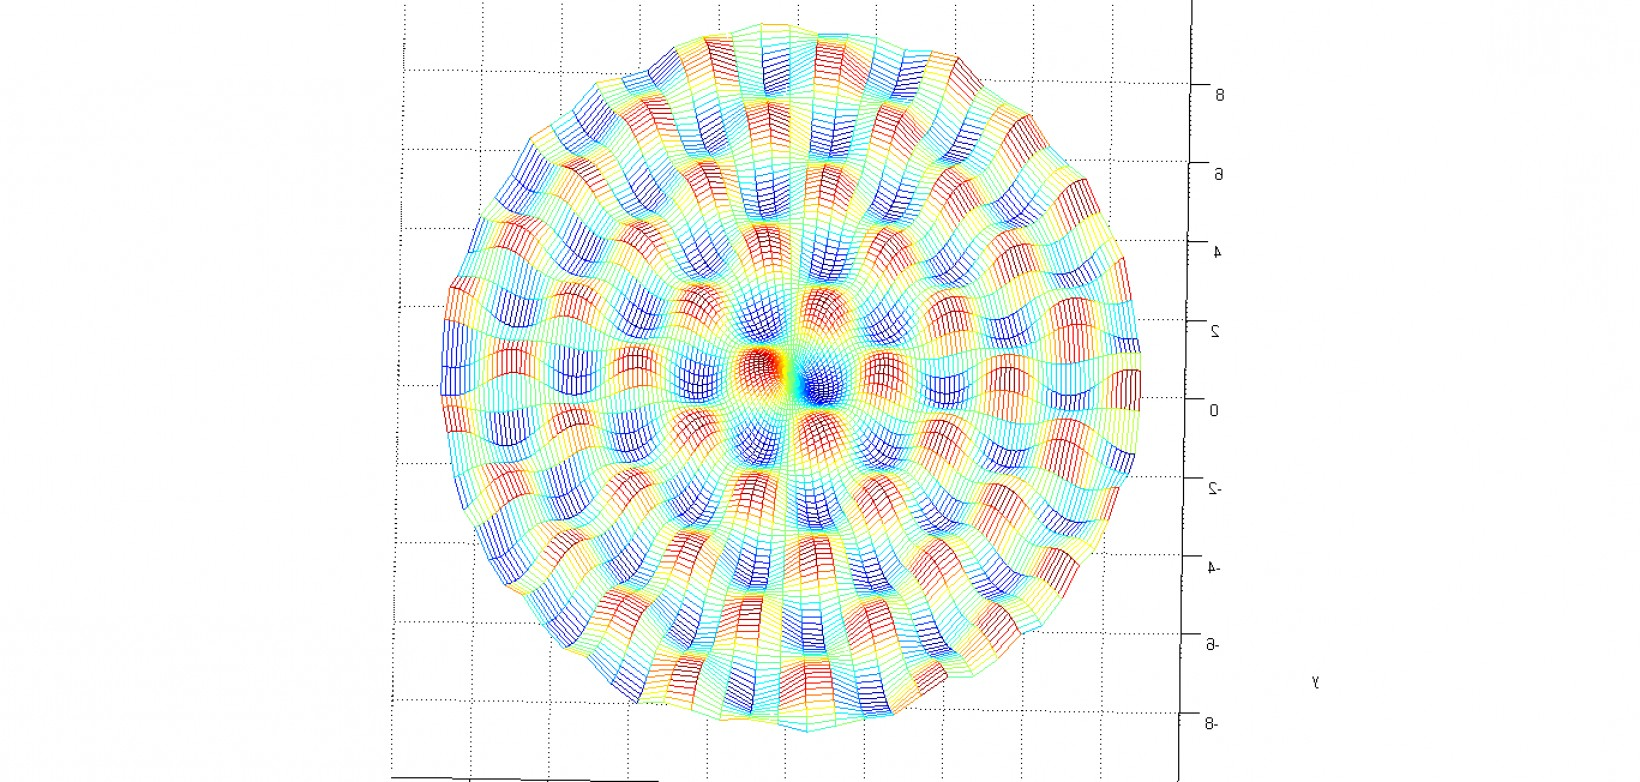 Plotting Vector Fields In MATLAB: How To Draw A Circular D Plot In Matlab